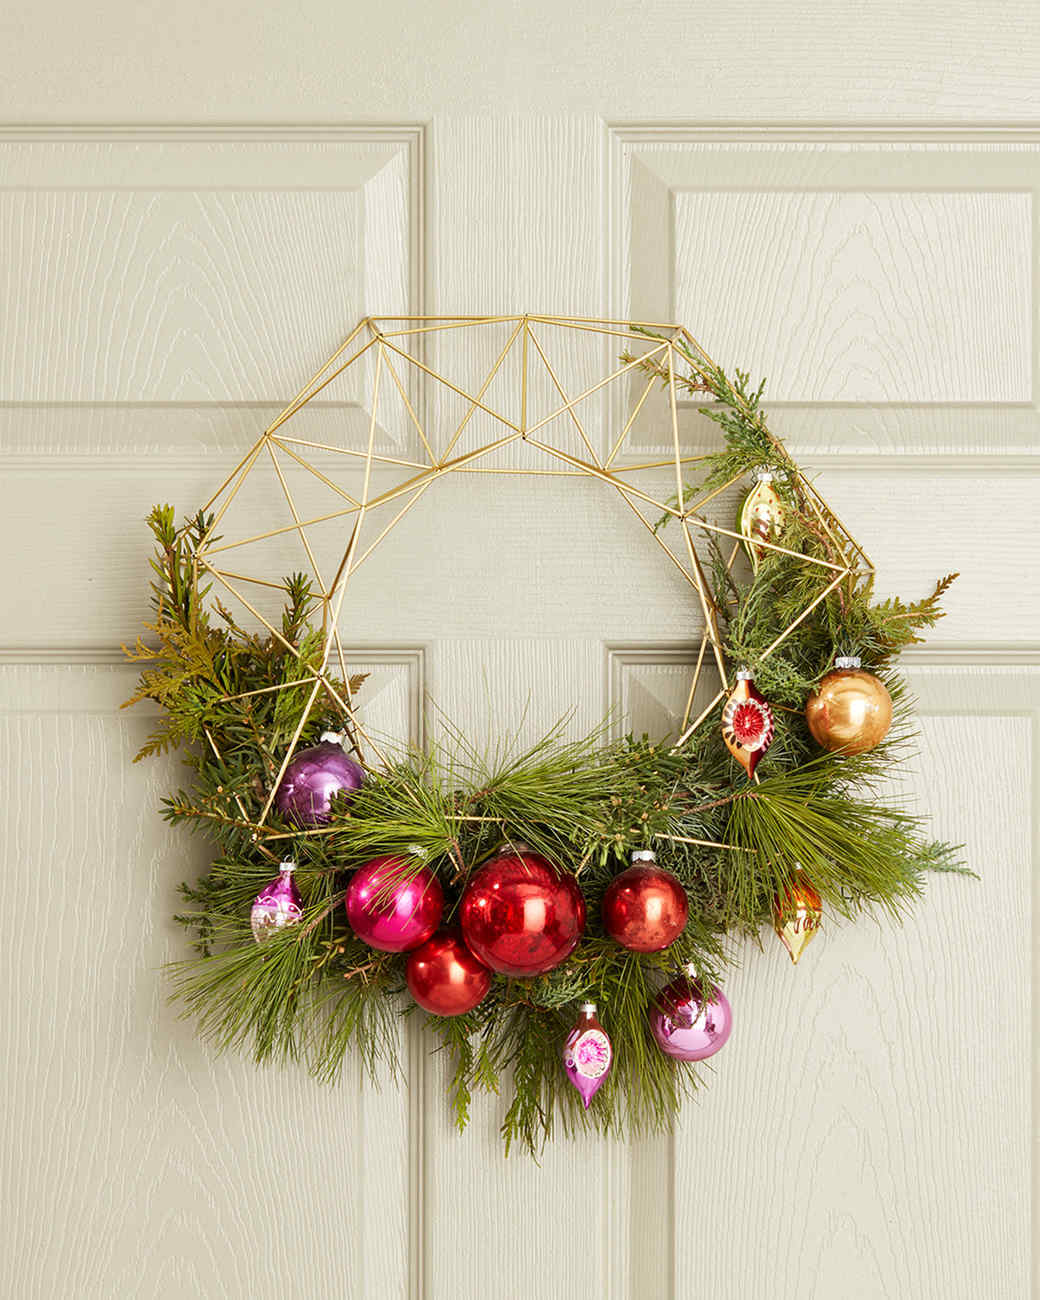 asymmetrical holiday wreath on front door